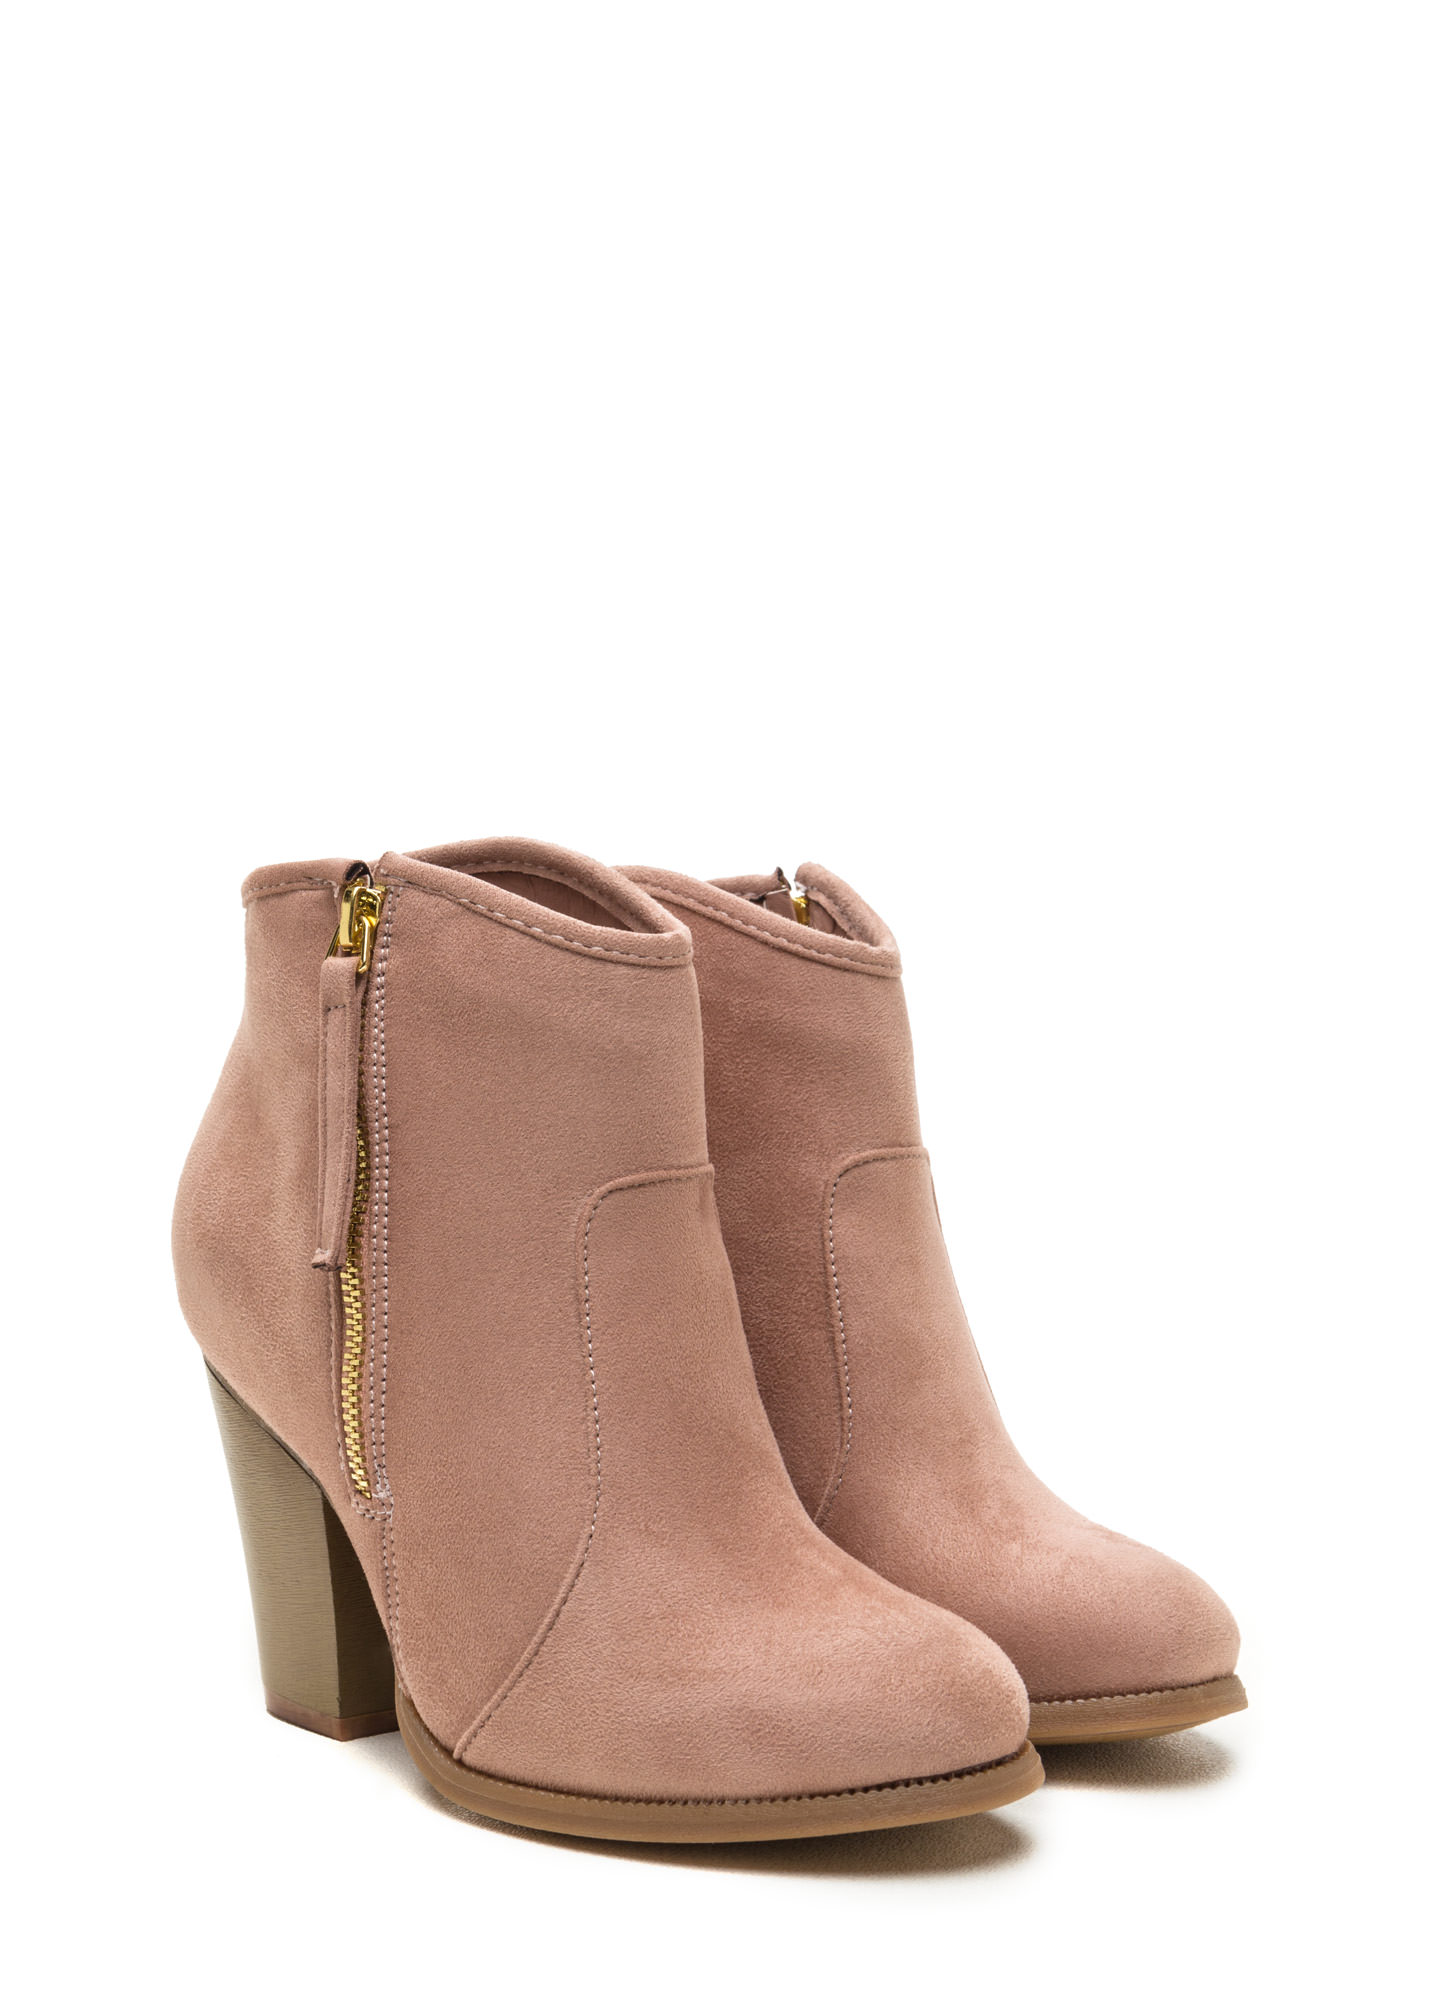 Zipped To The Top Chunky Booties MAUVE